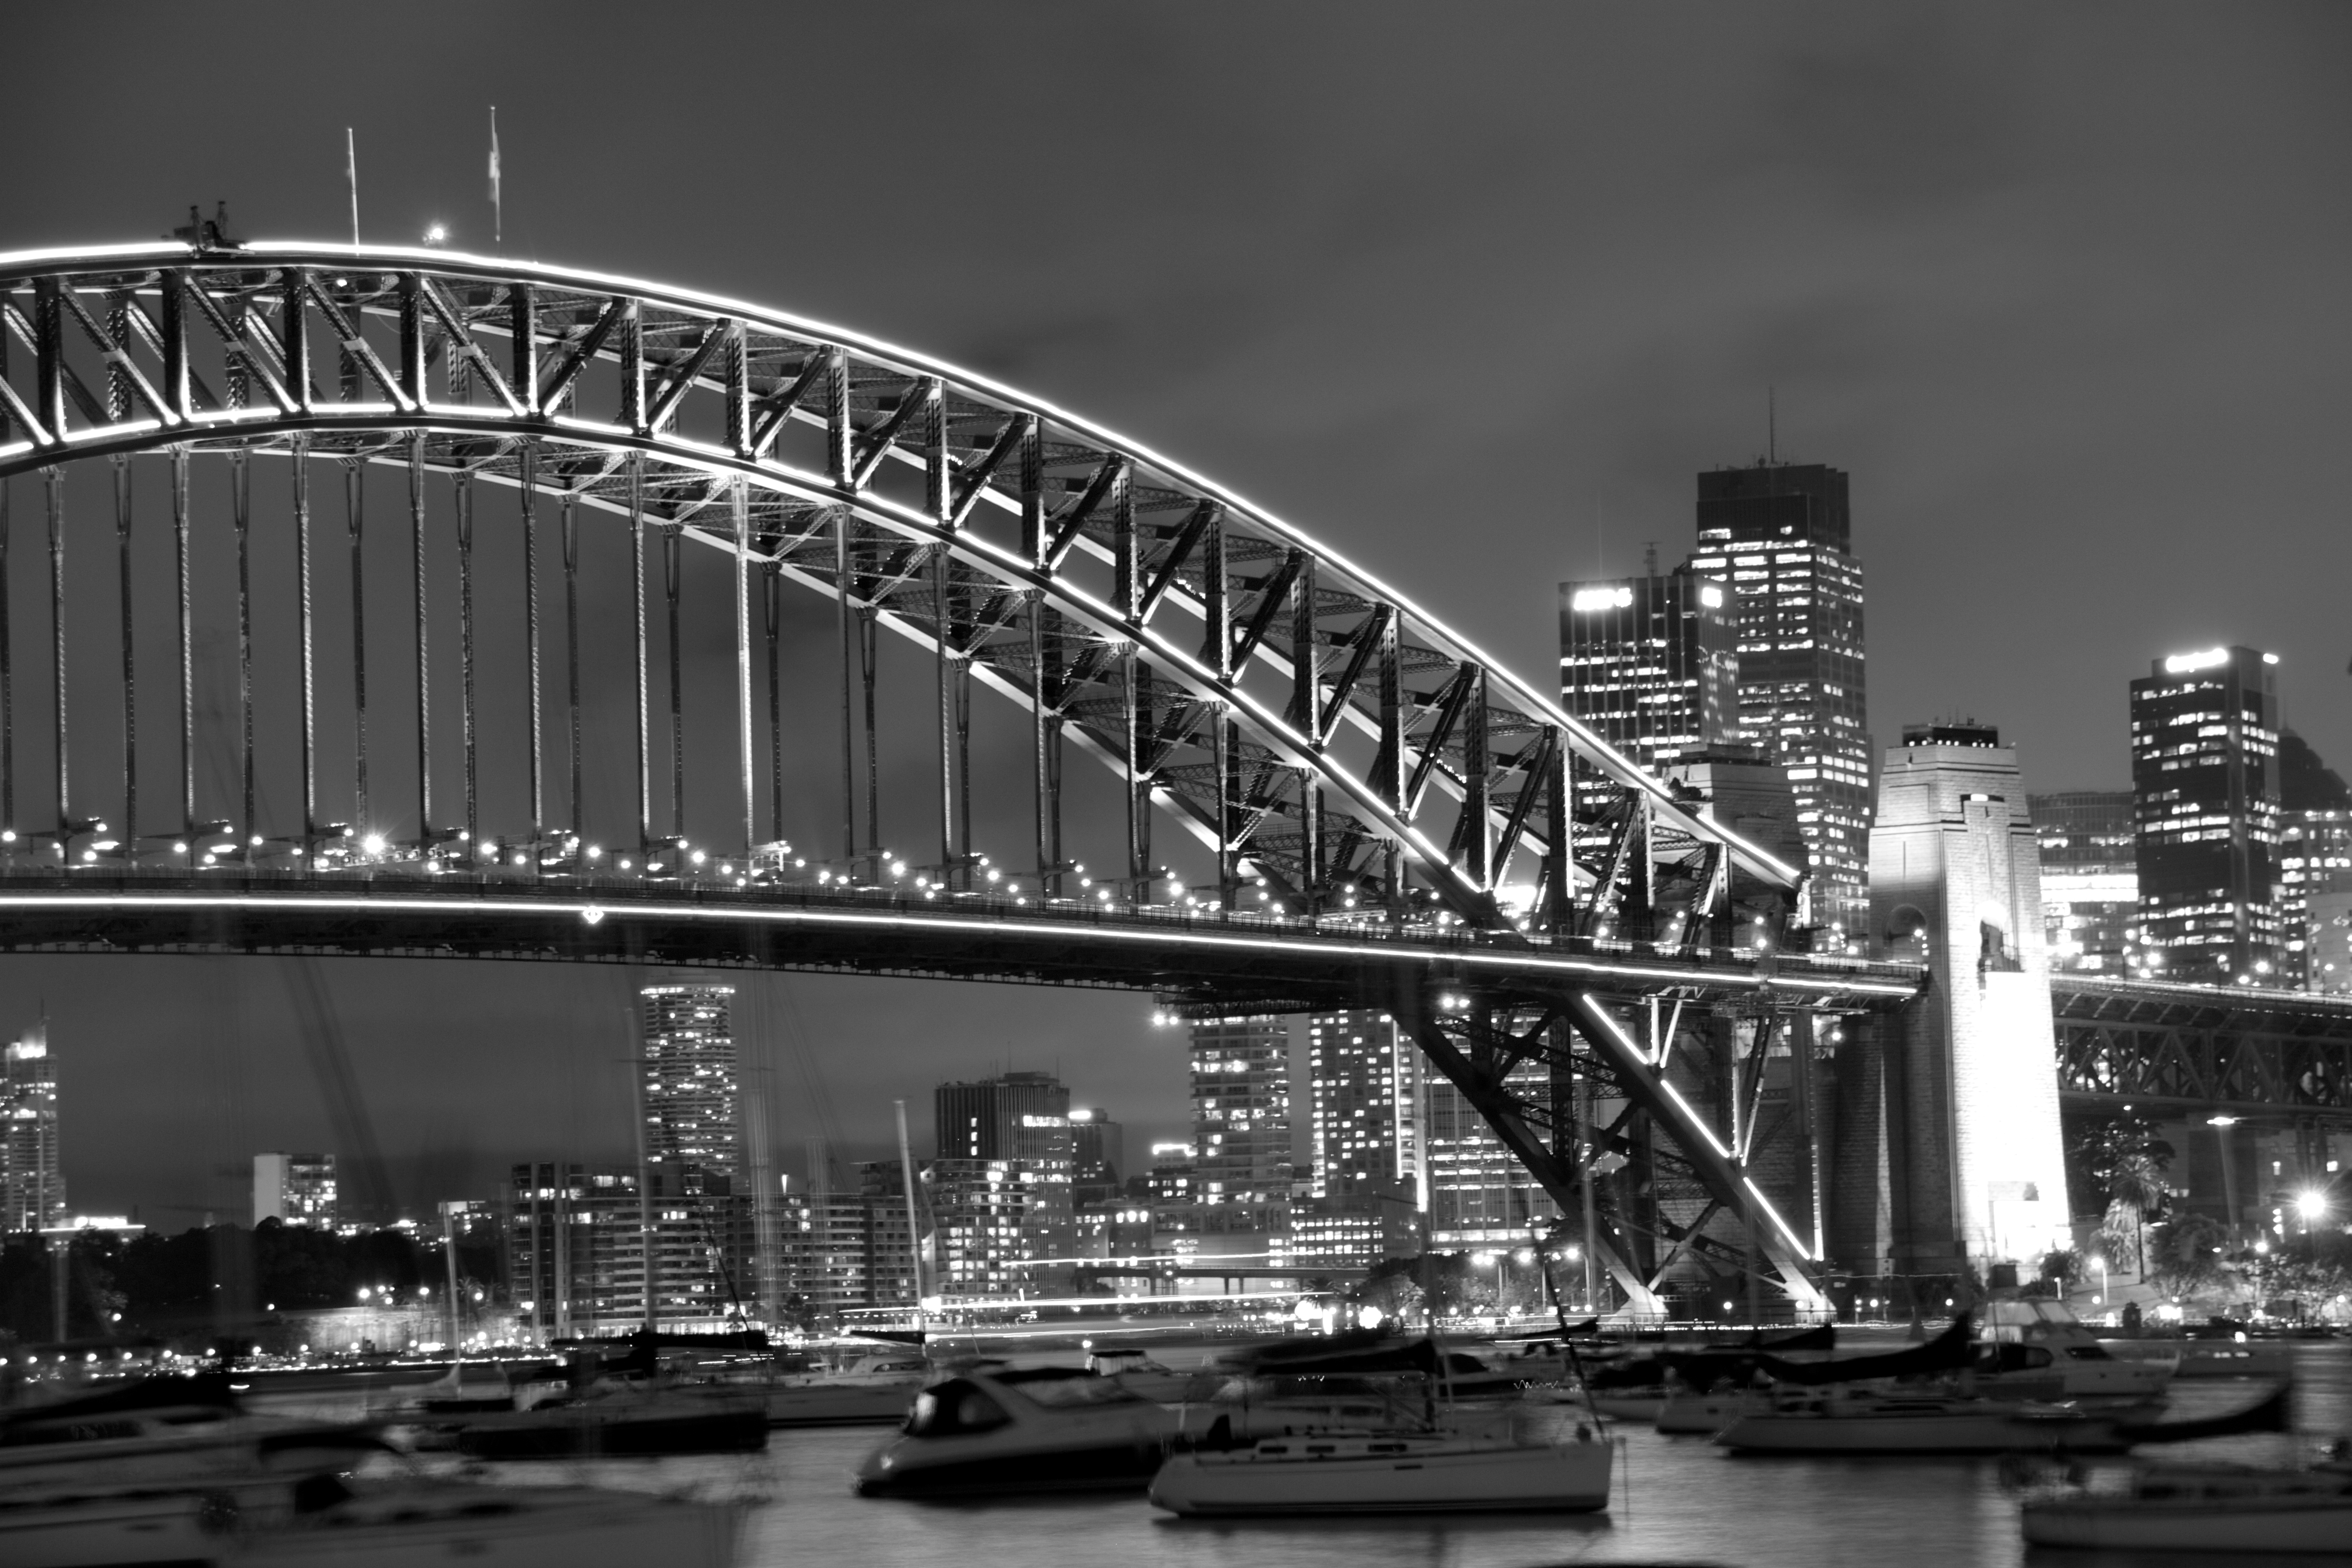 Vivid festival in black and white, Steel arch bridge, Skyline, Project52, Sydney, HQ Photo